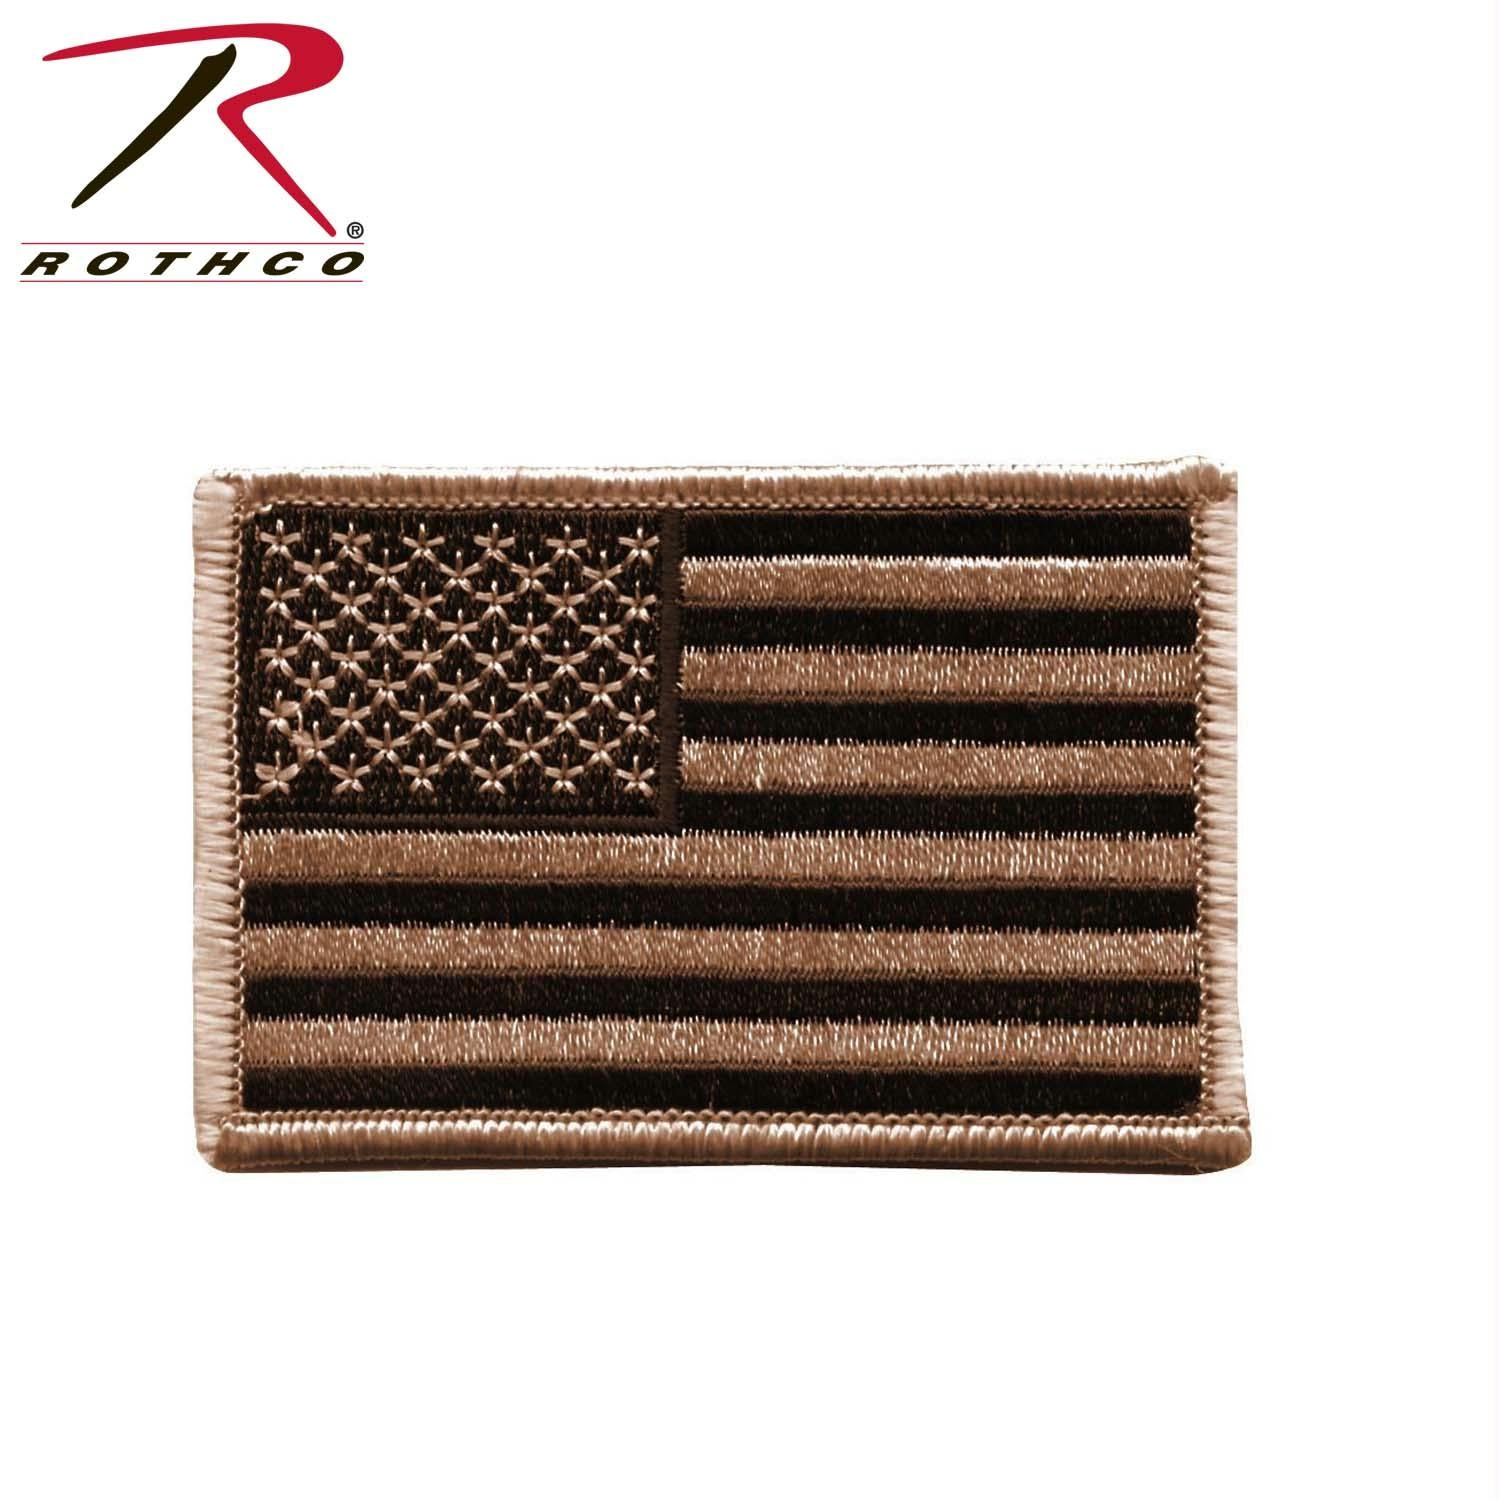 Rothco Iron On / Sew On Embroidered US Flag Patch - Desert Tan / Normal